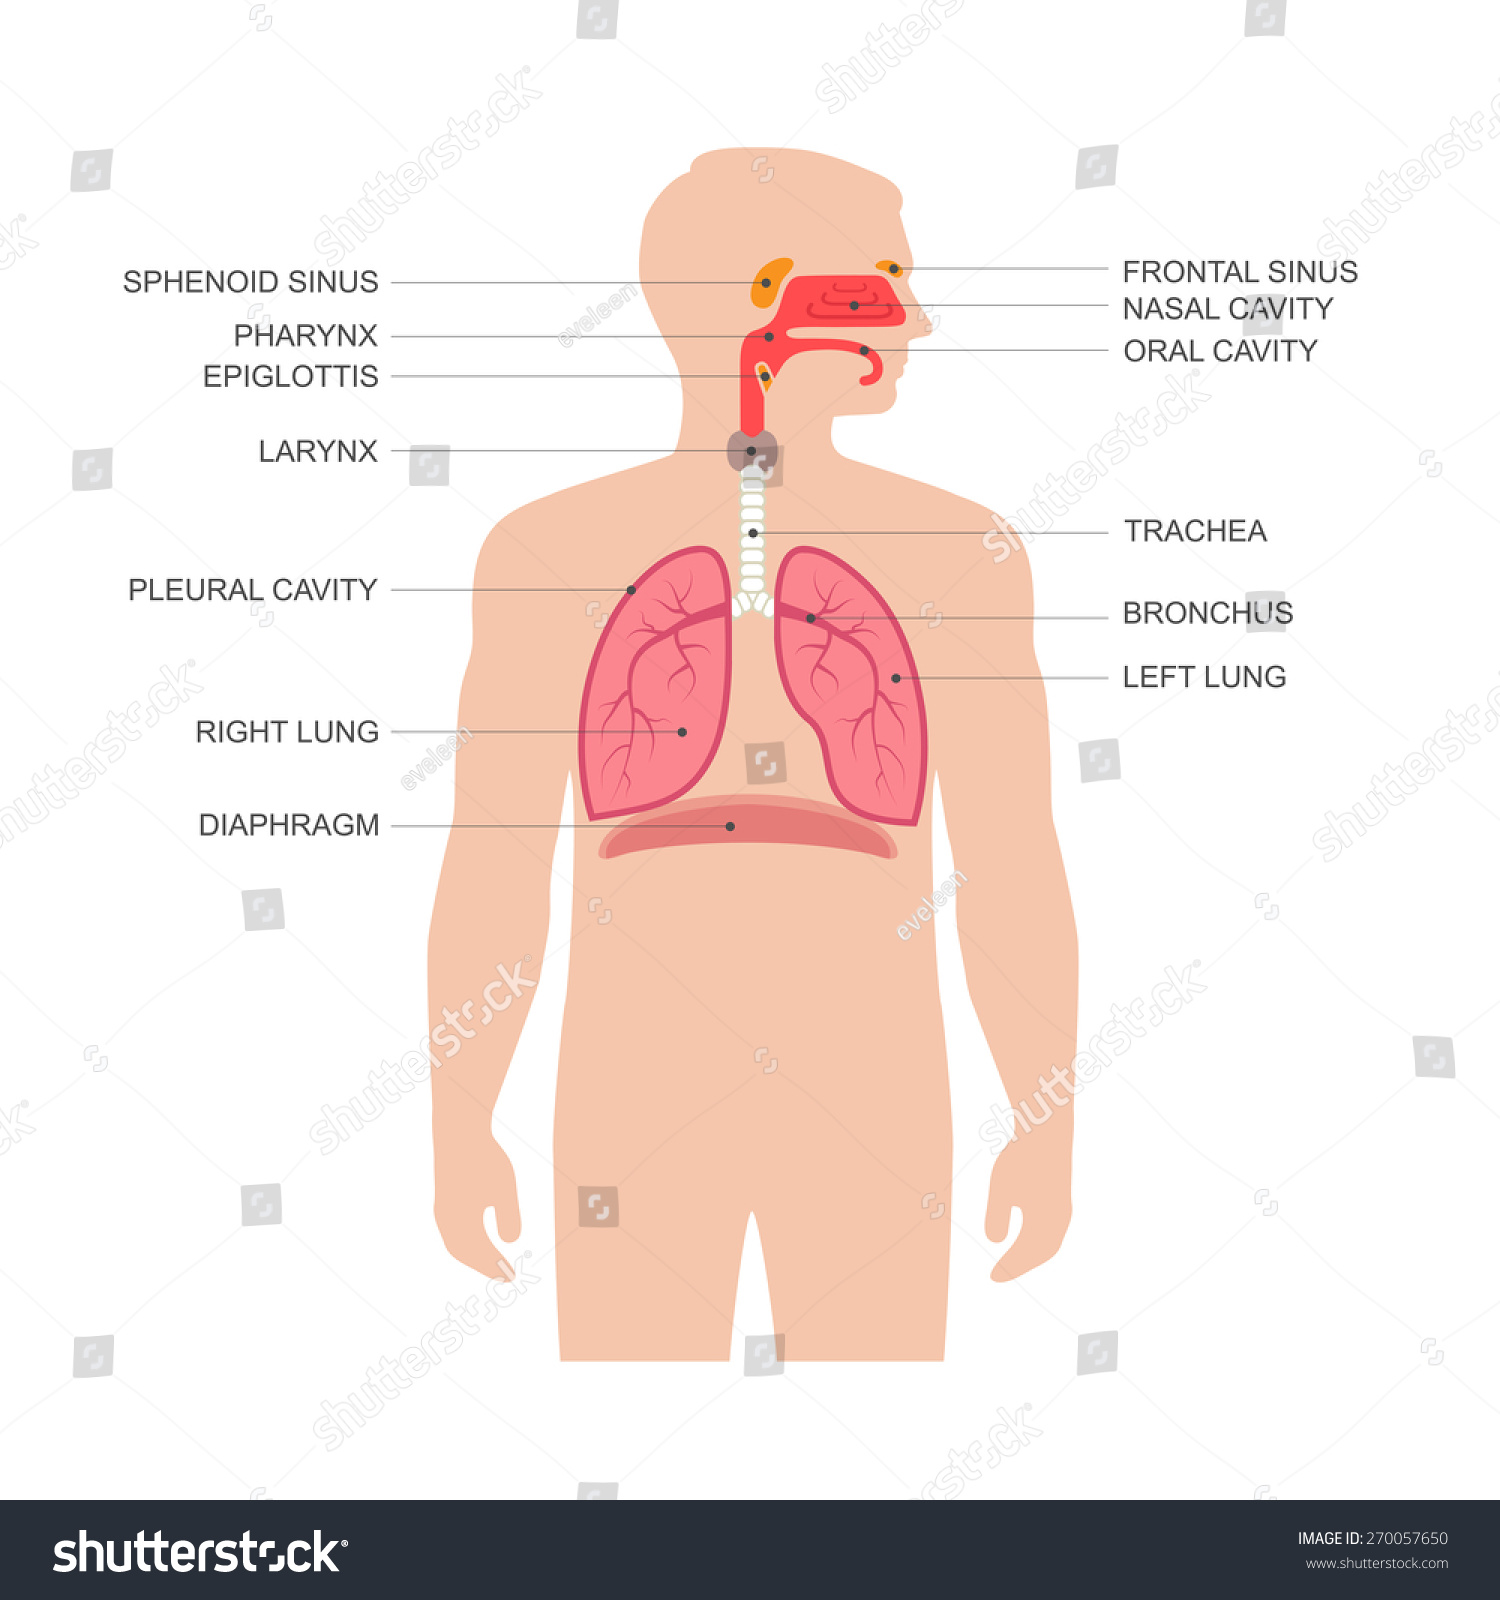 Human Respiratory System Anatomy Vector Medical Stock Photo Photo